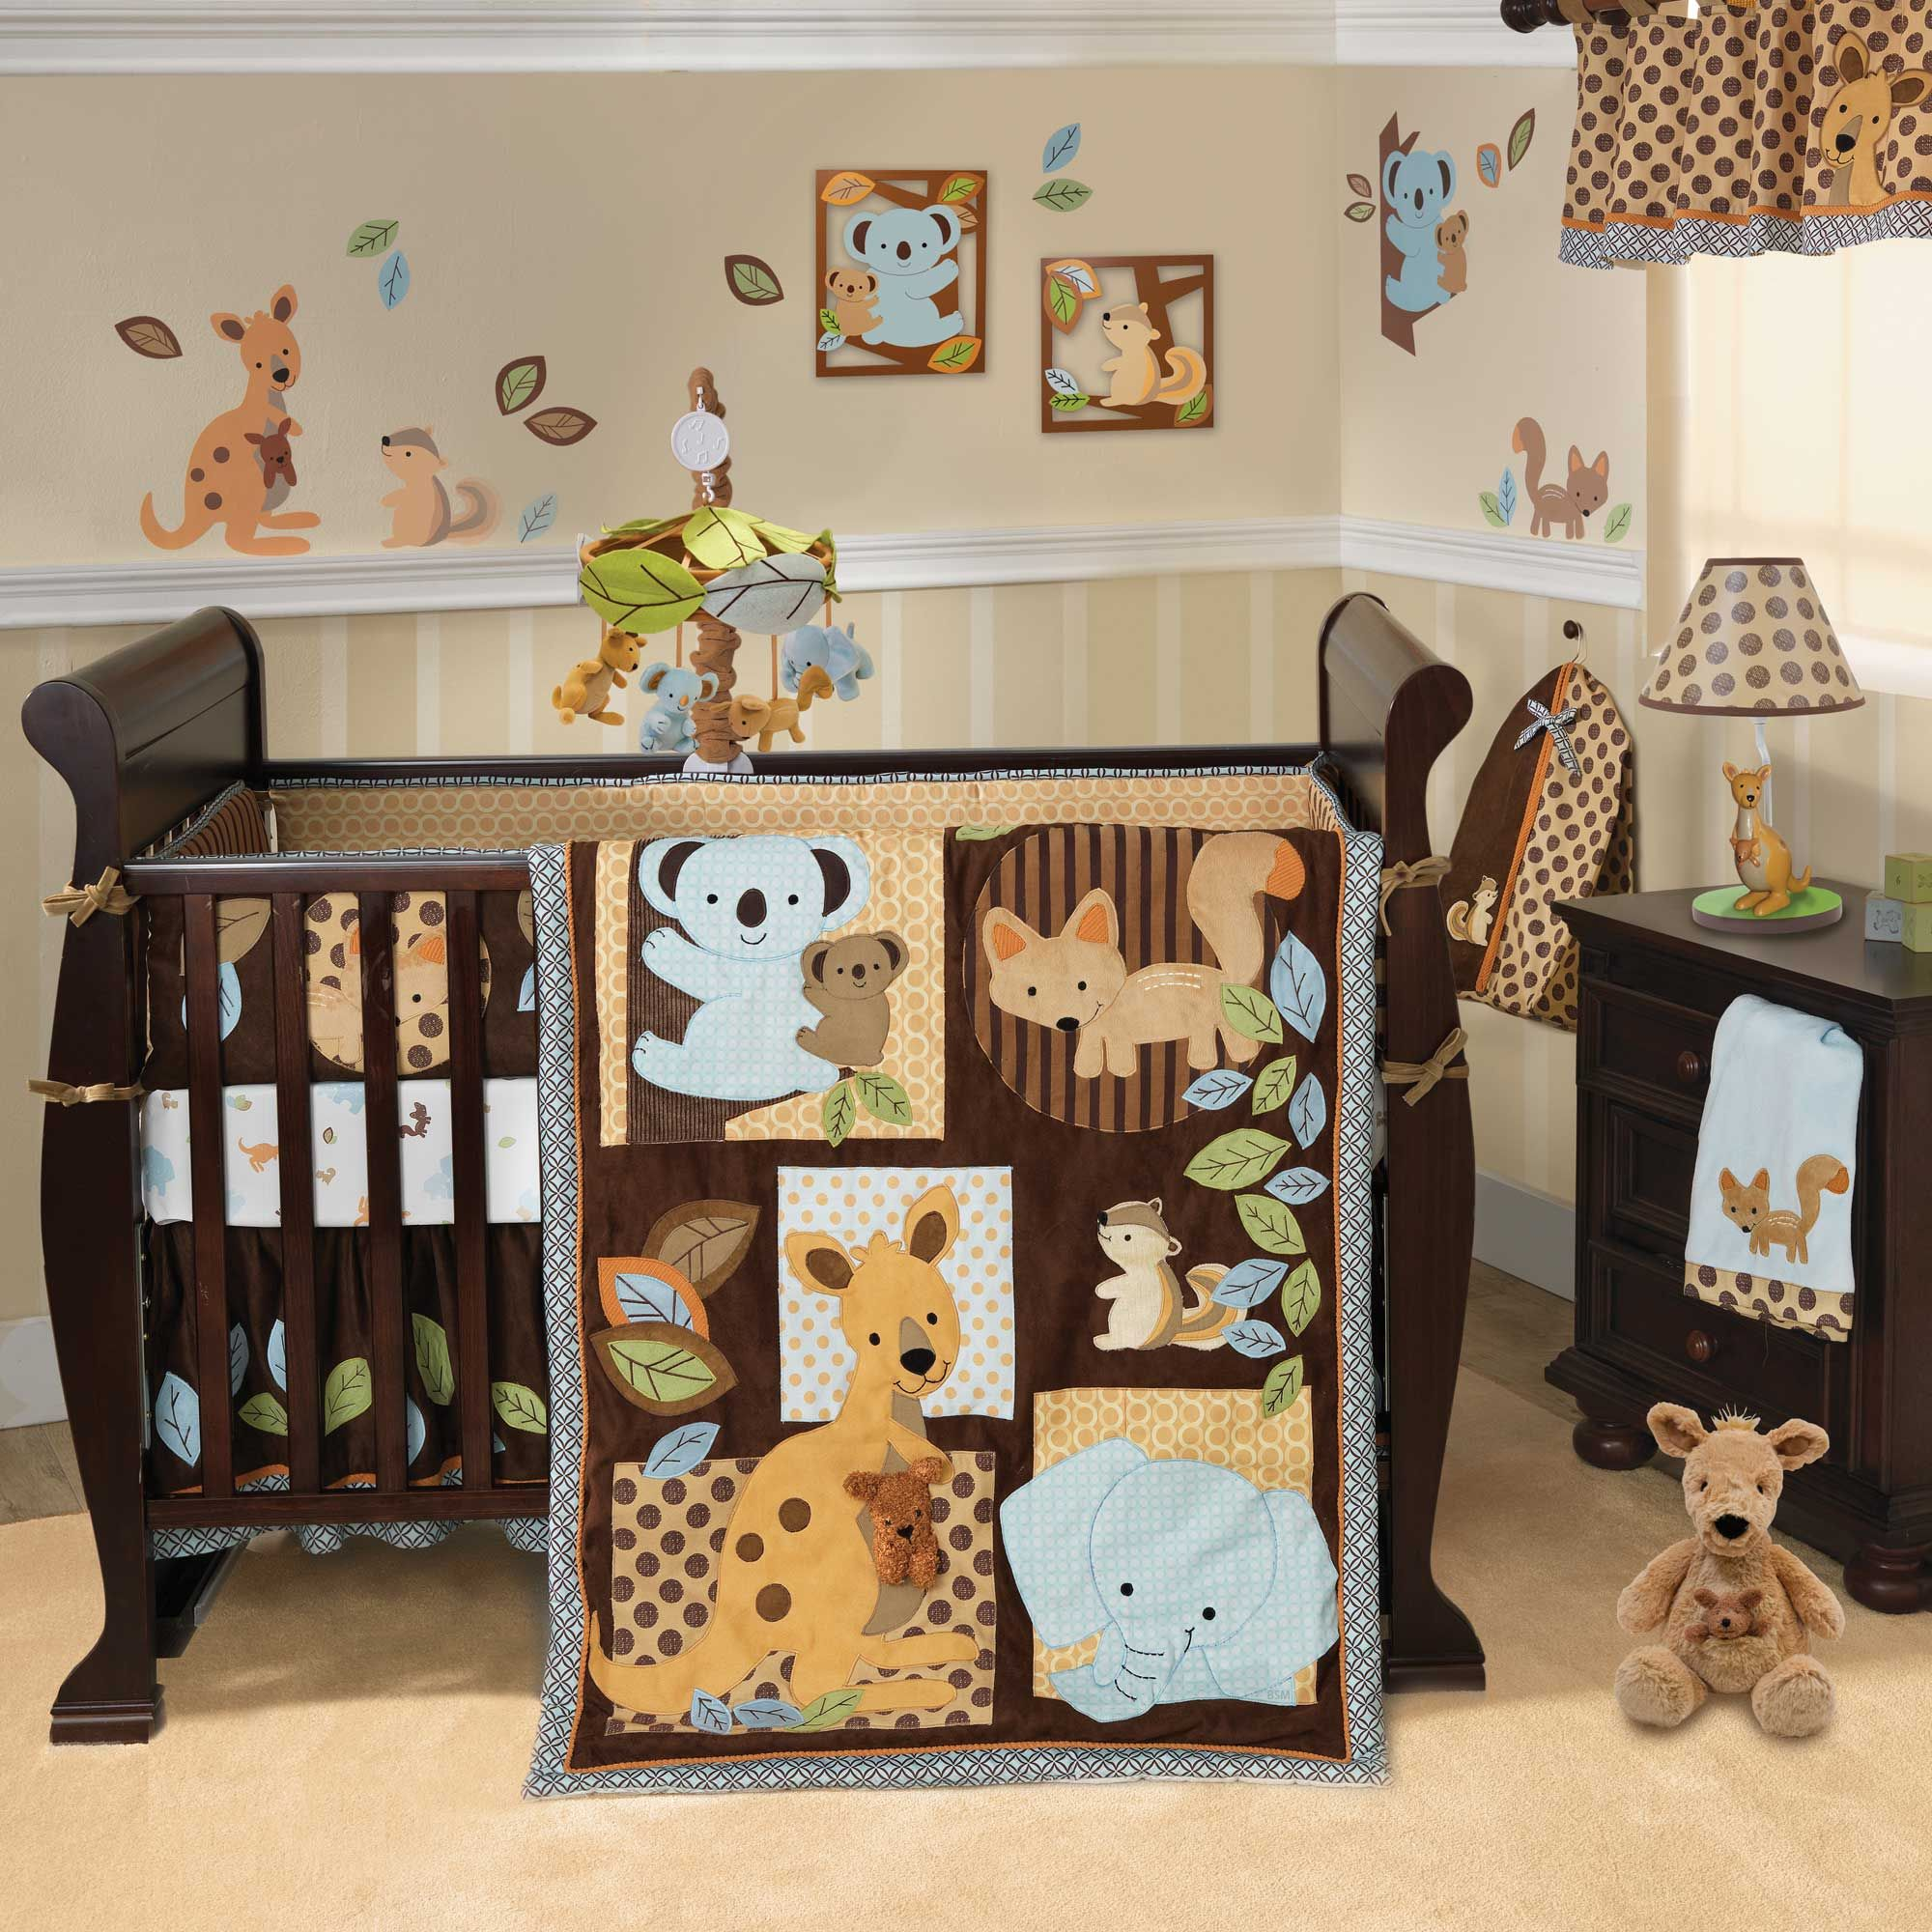 Cool and inspiring ideas for baby boy nursery: funny nursery for baby boy  with wooden